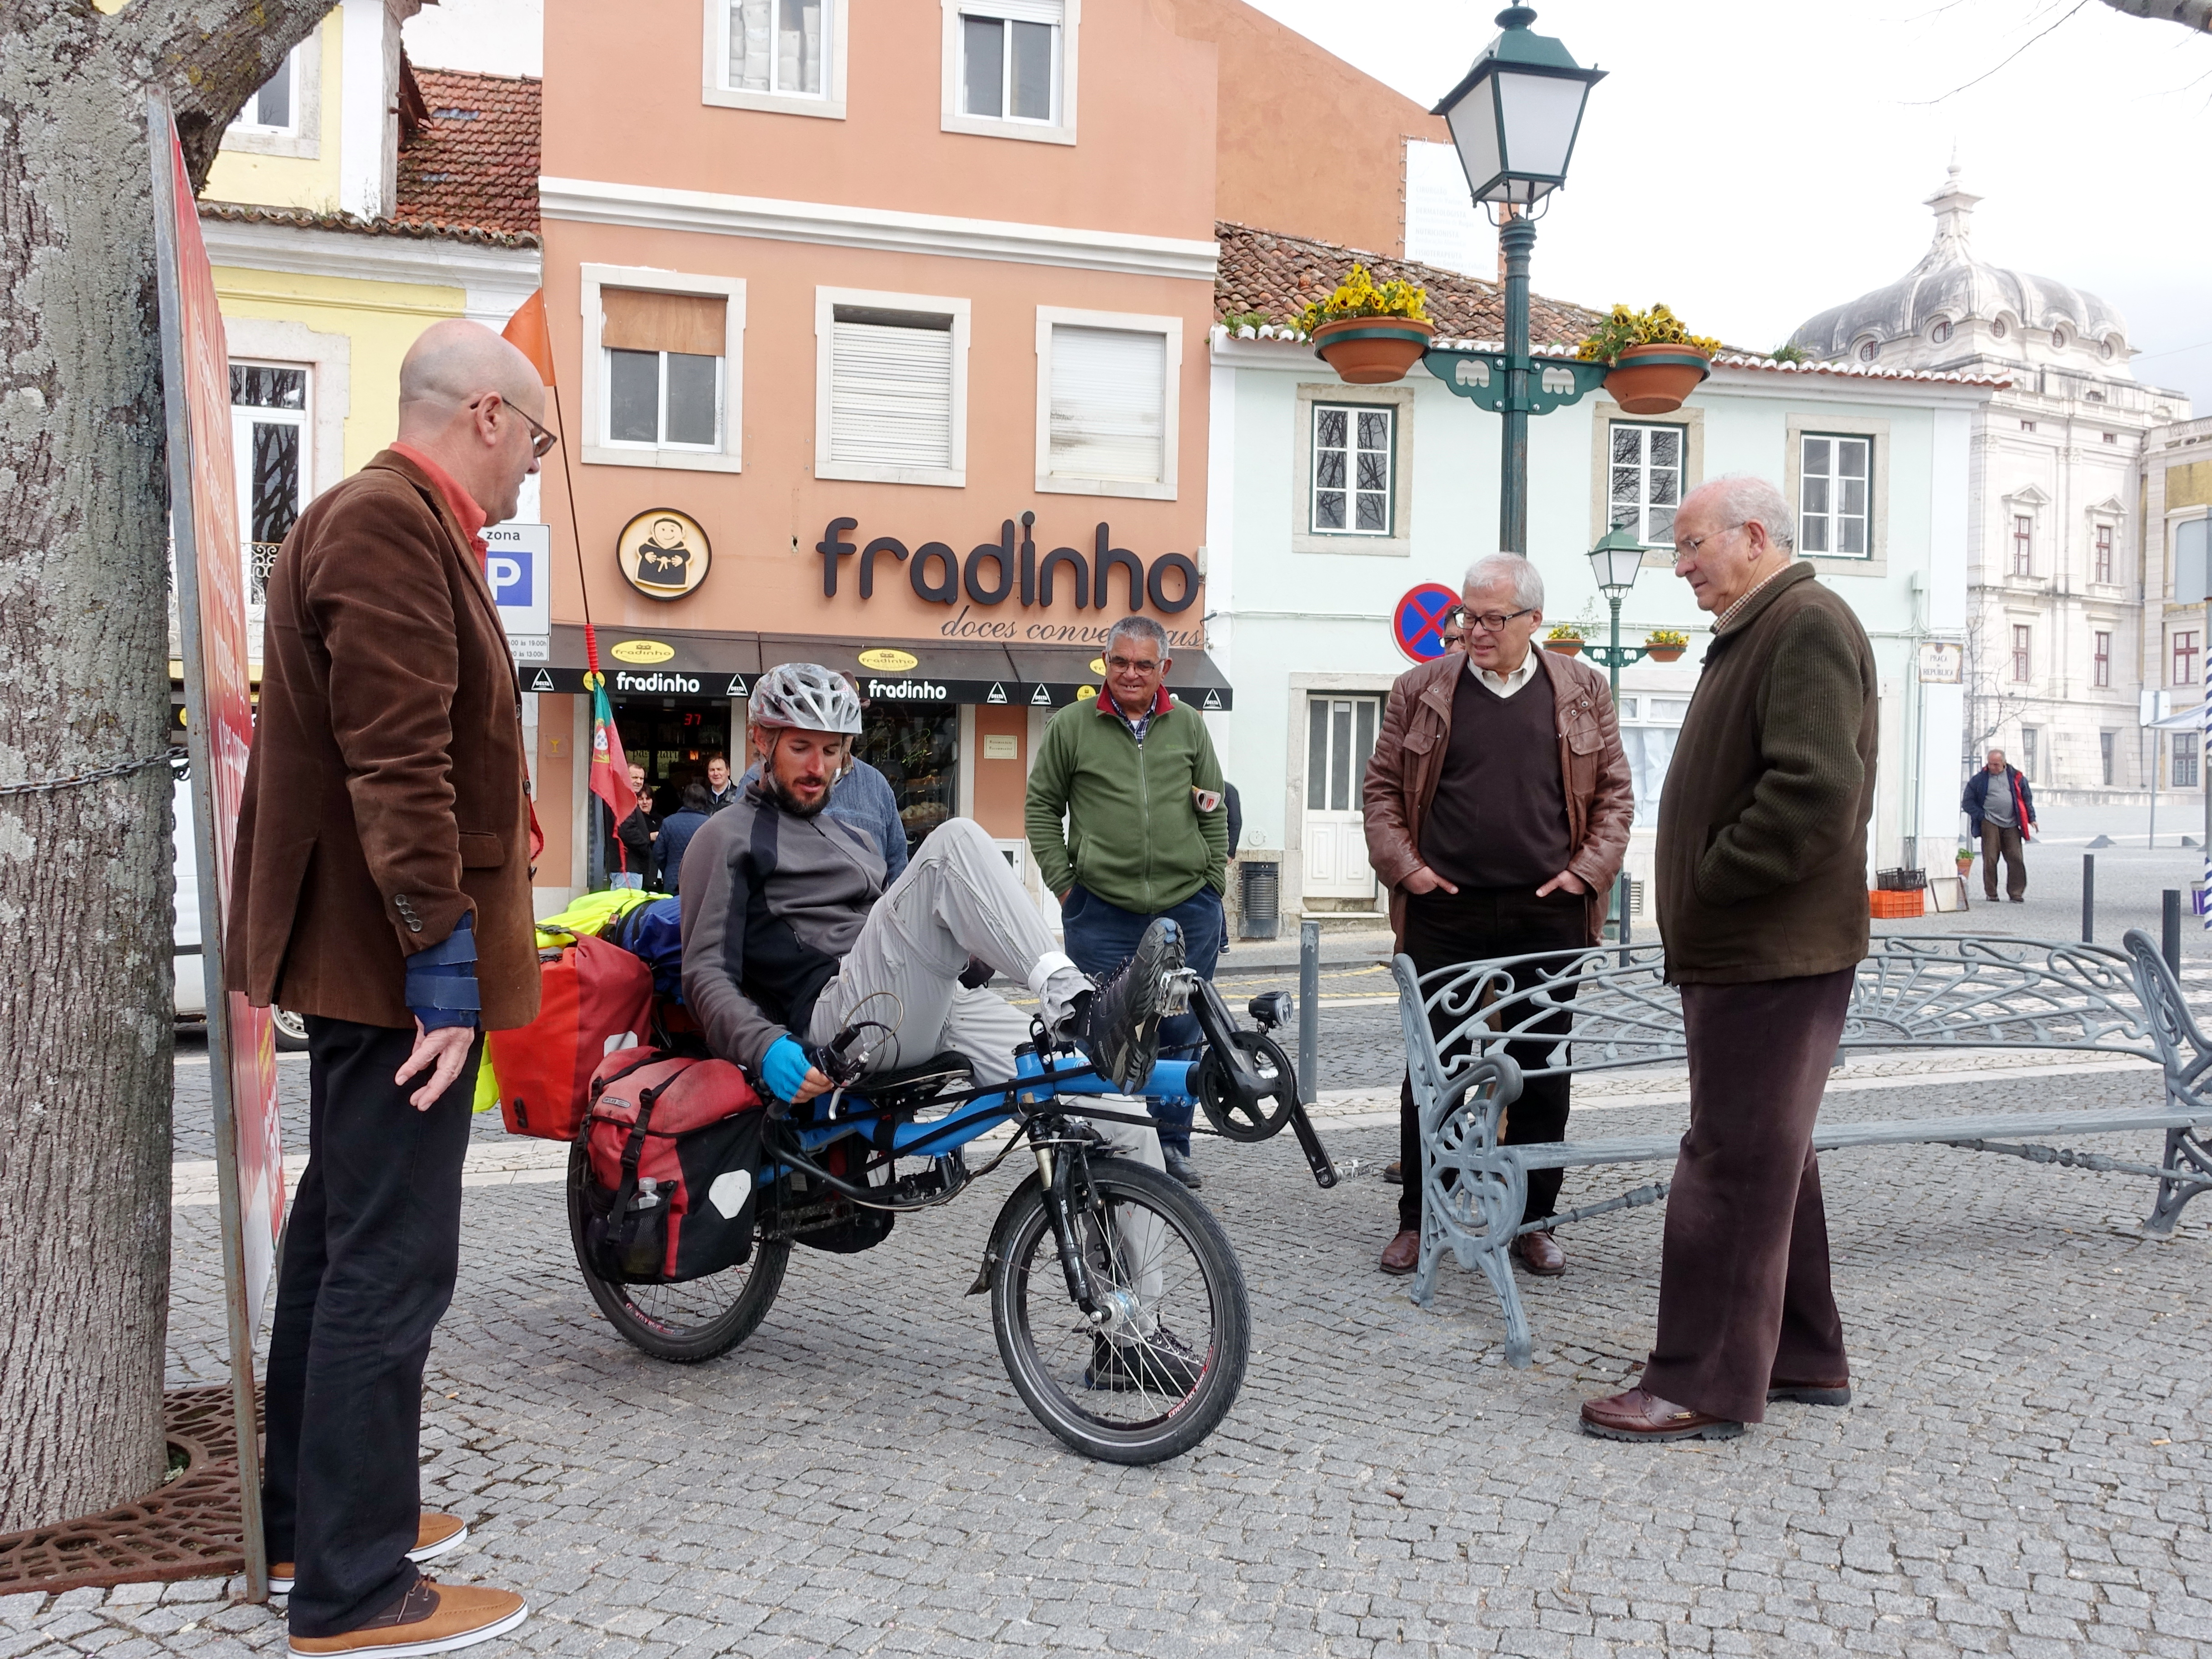 bicycle touring through small villages in Portugal